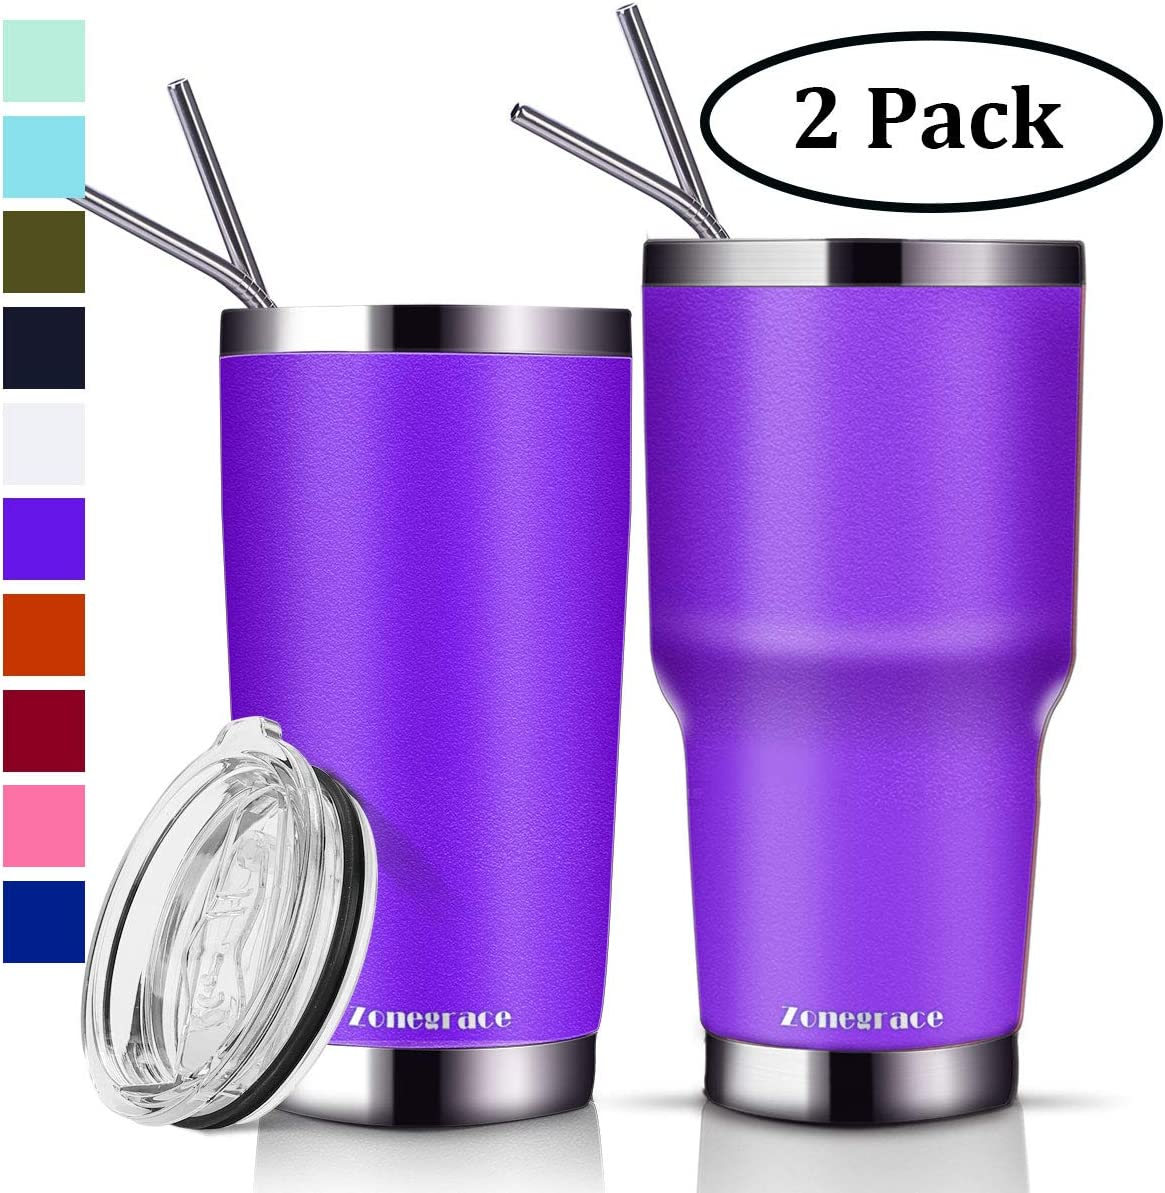 Zonegrace 2 Pack 20 oz and 30 oz Purple Tumbler with Straw Lid Travel Mug Gift Vacuum Insulated Coffee Tumbler Cup 18/8 Stainless Steel Water Tumbler